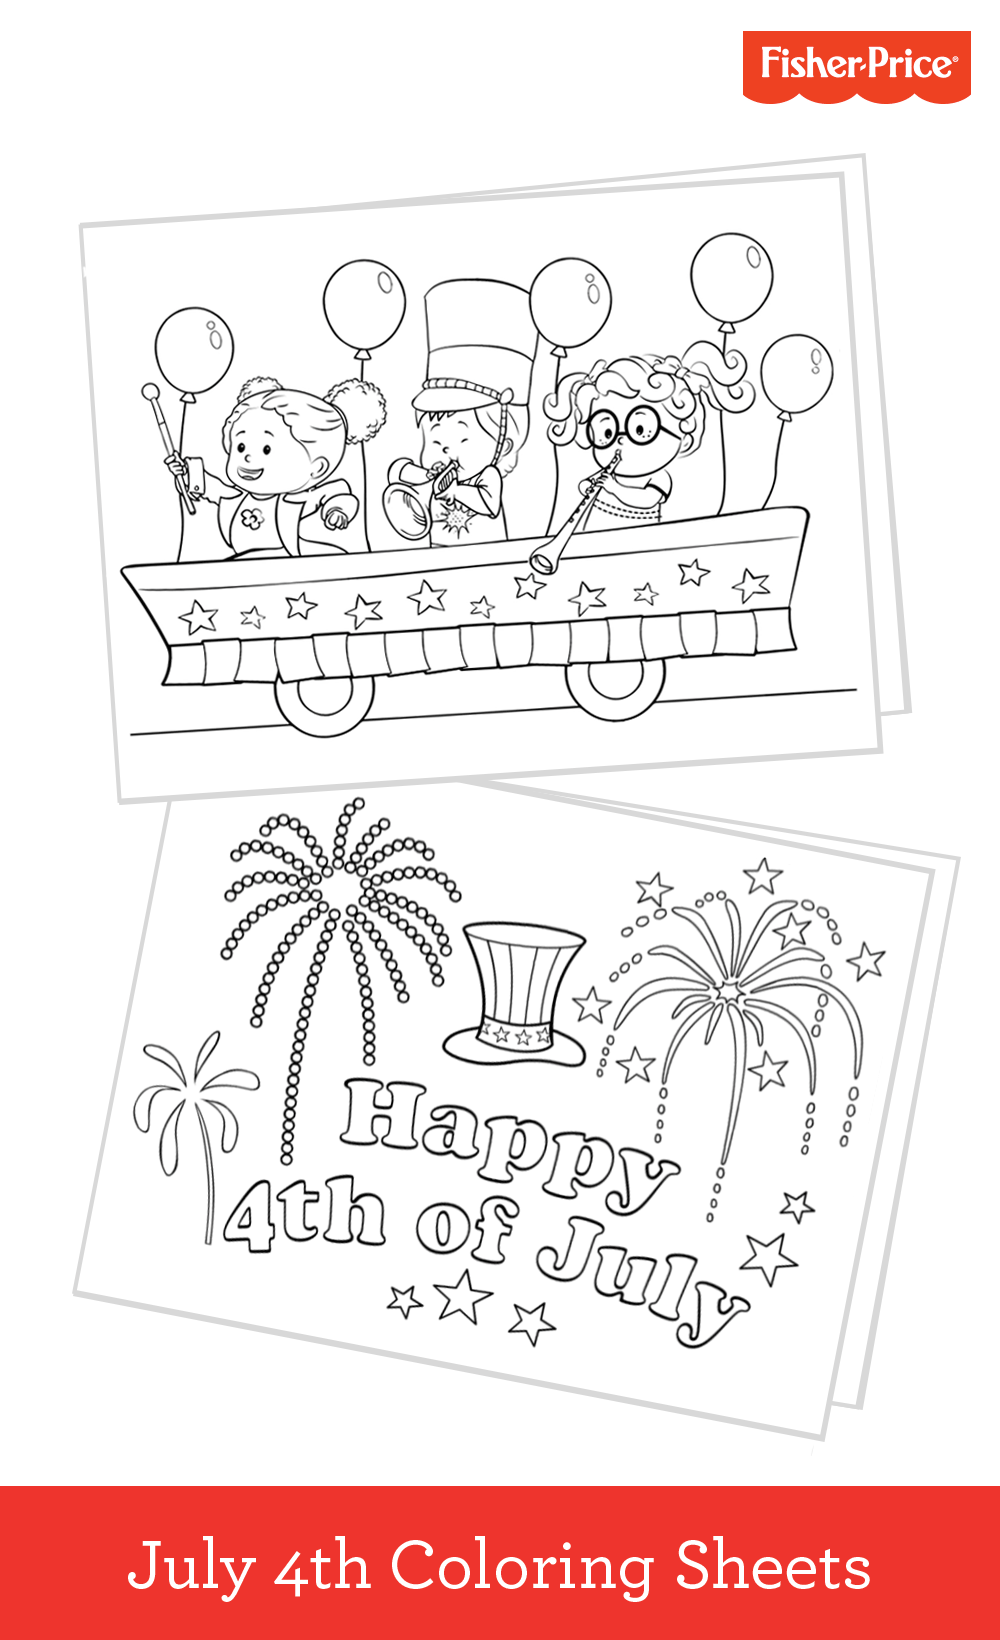 Take Out The Crayons And Get Ready For Coloring Fun With Free